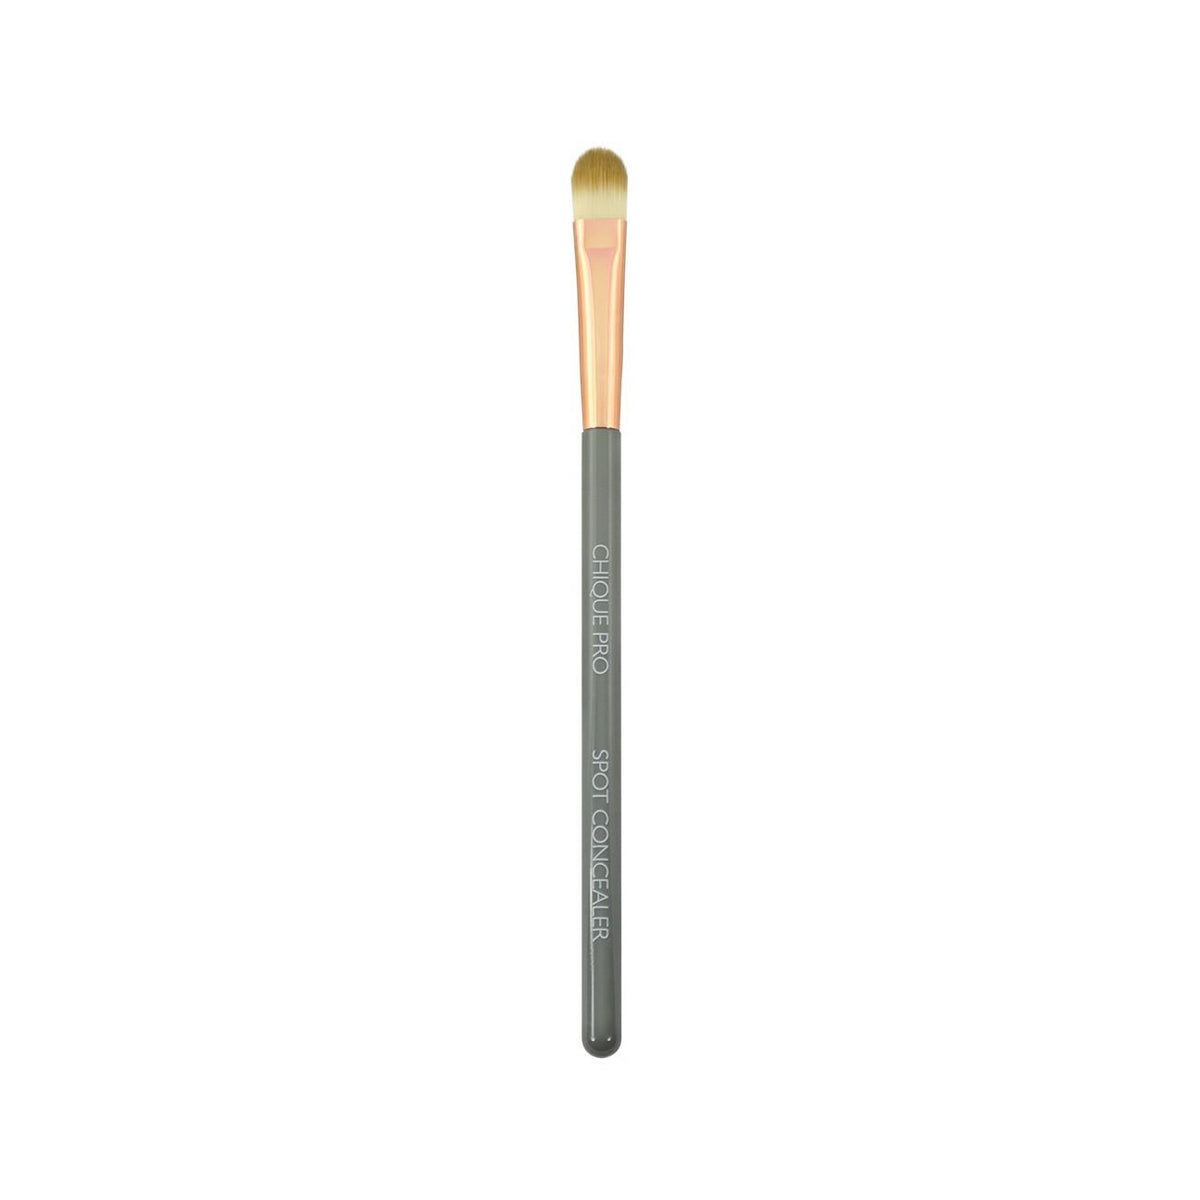 Royal & Langnickel Chique Pro Spot Concealer Brush